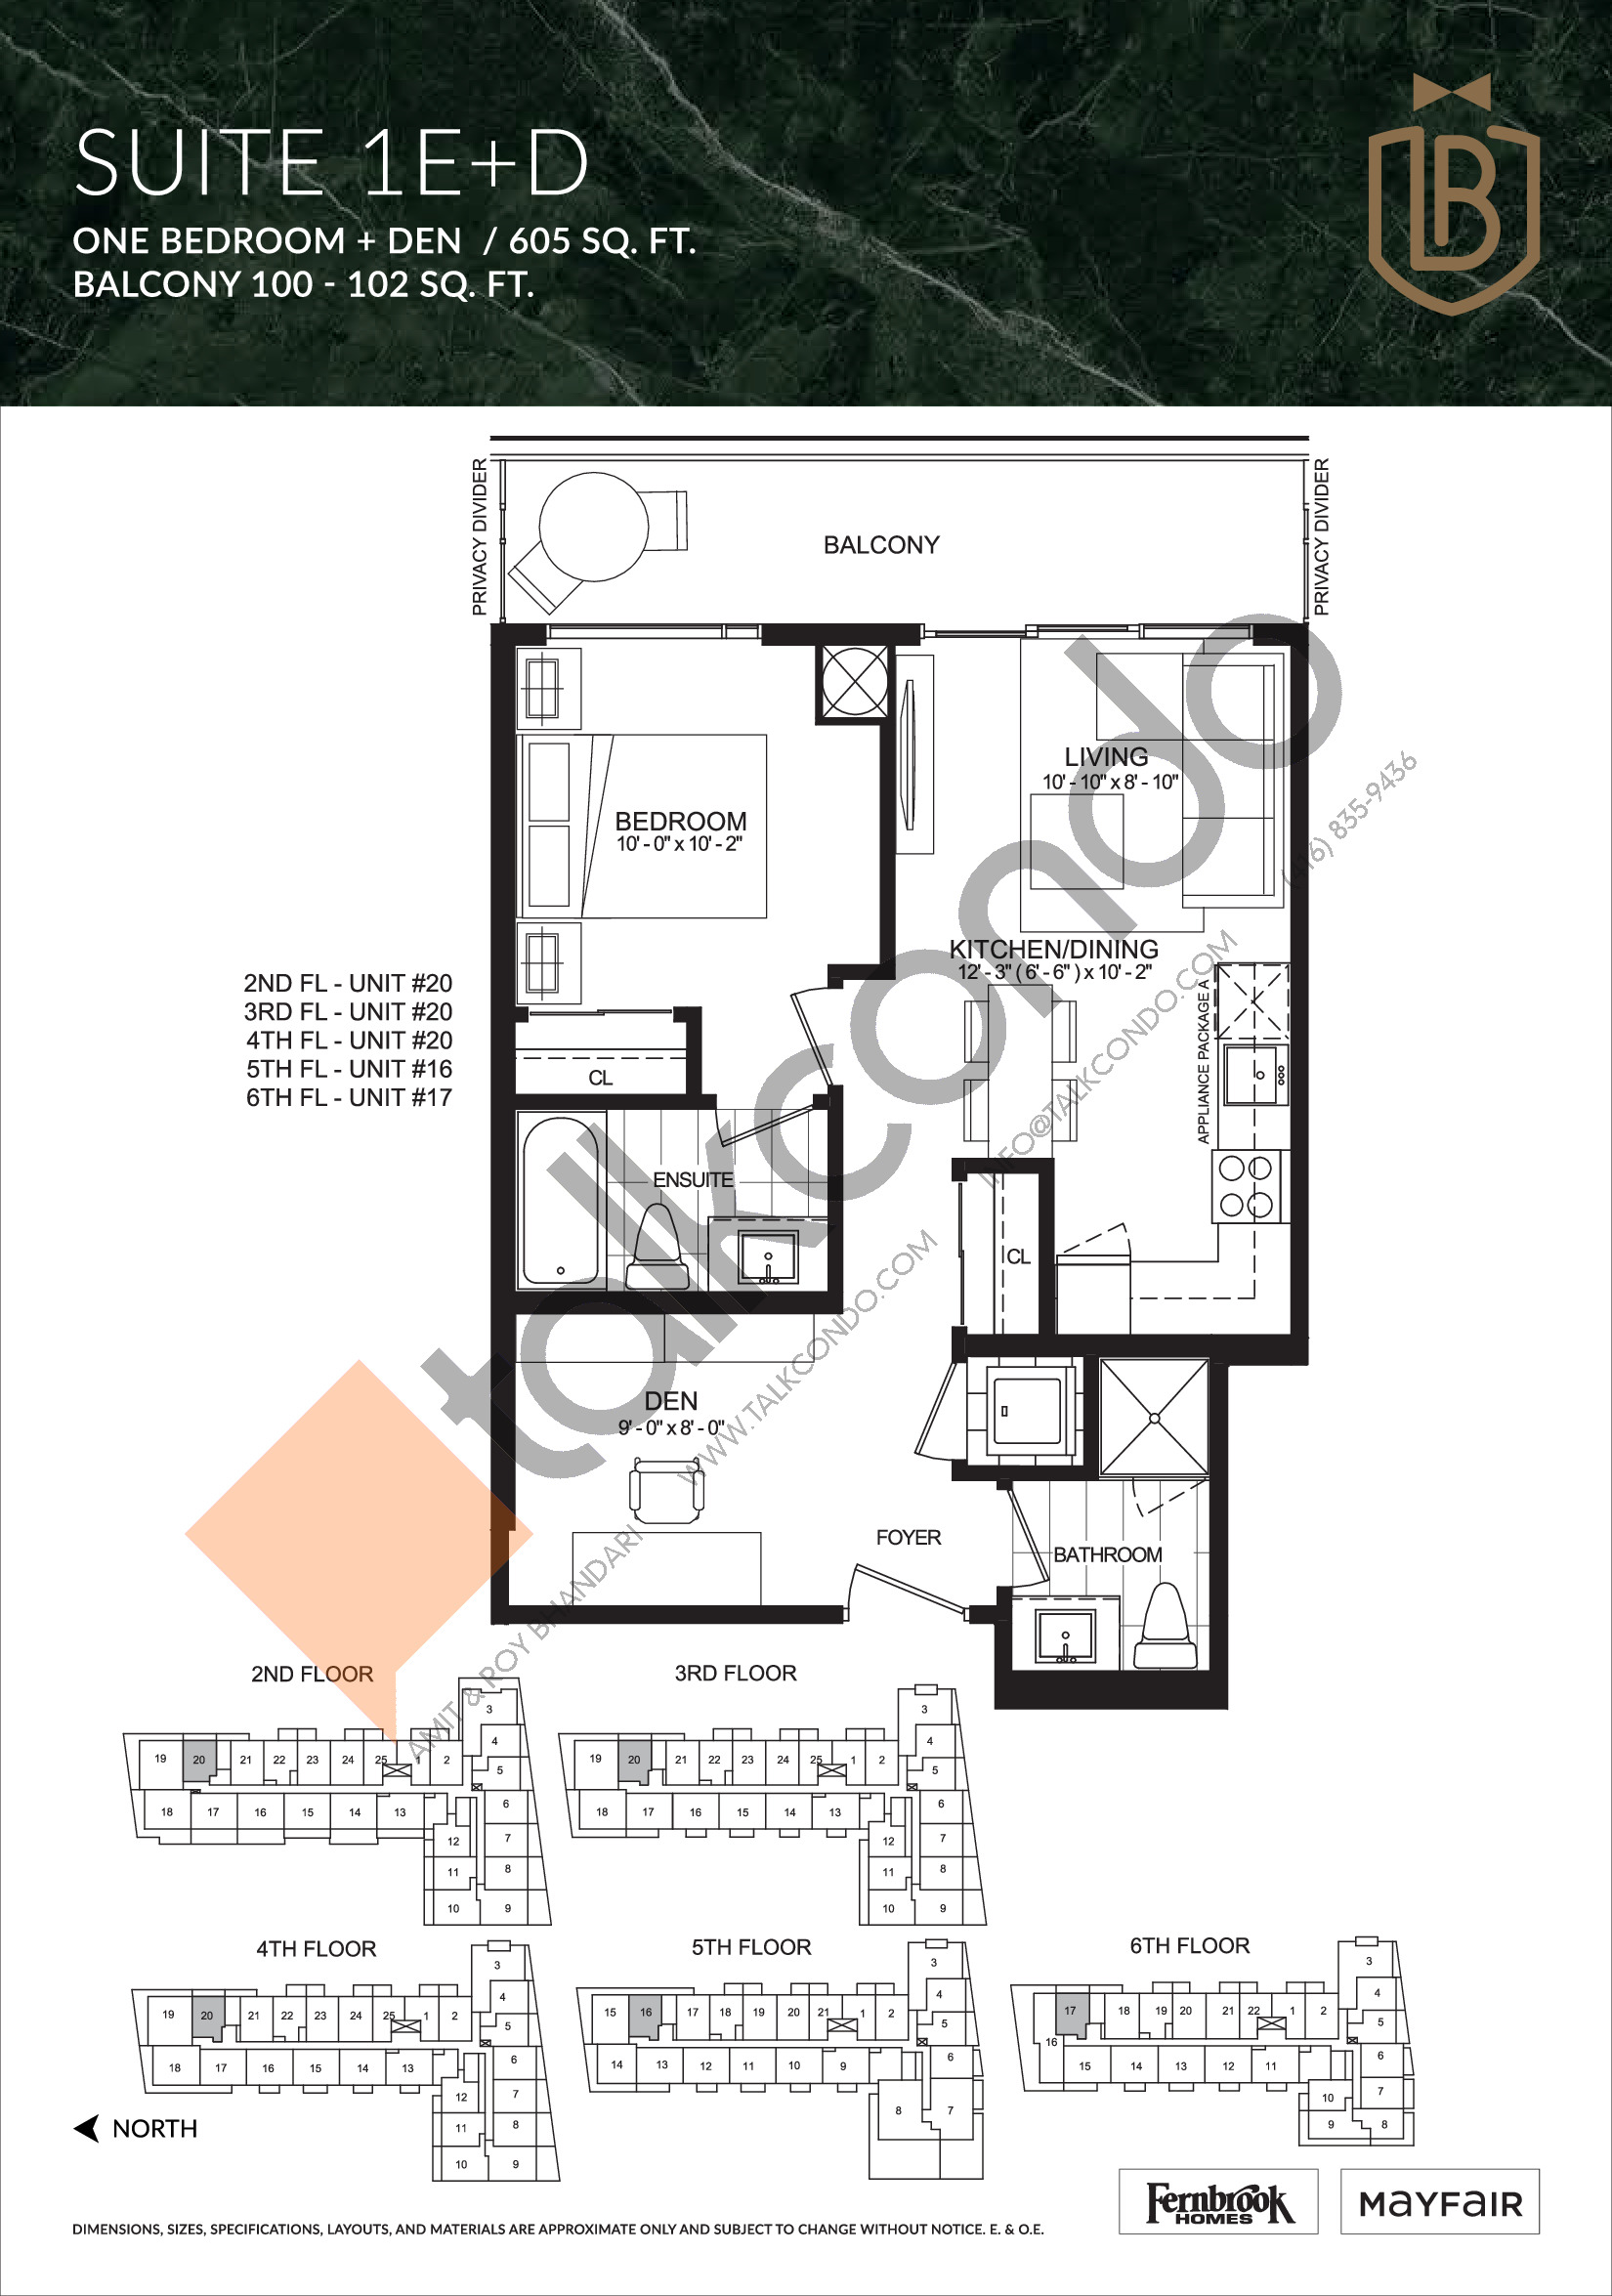 Suite 1E+D Floor Plan at The Butler Condos - 605 sq.ft